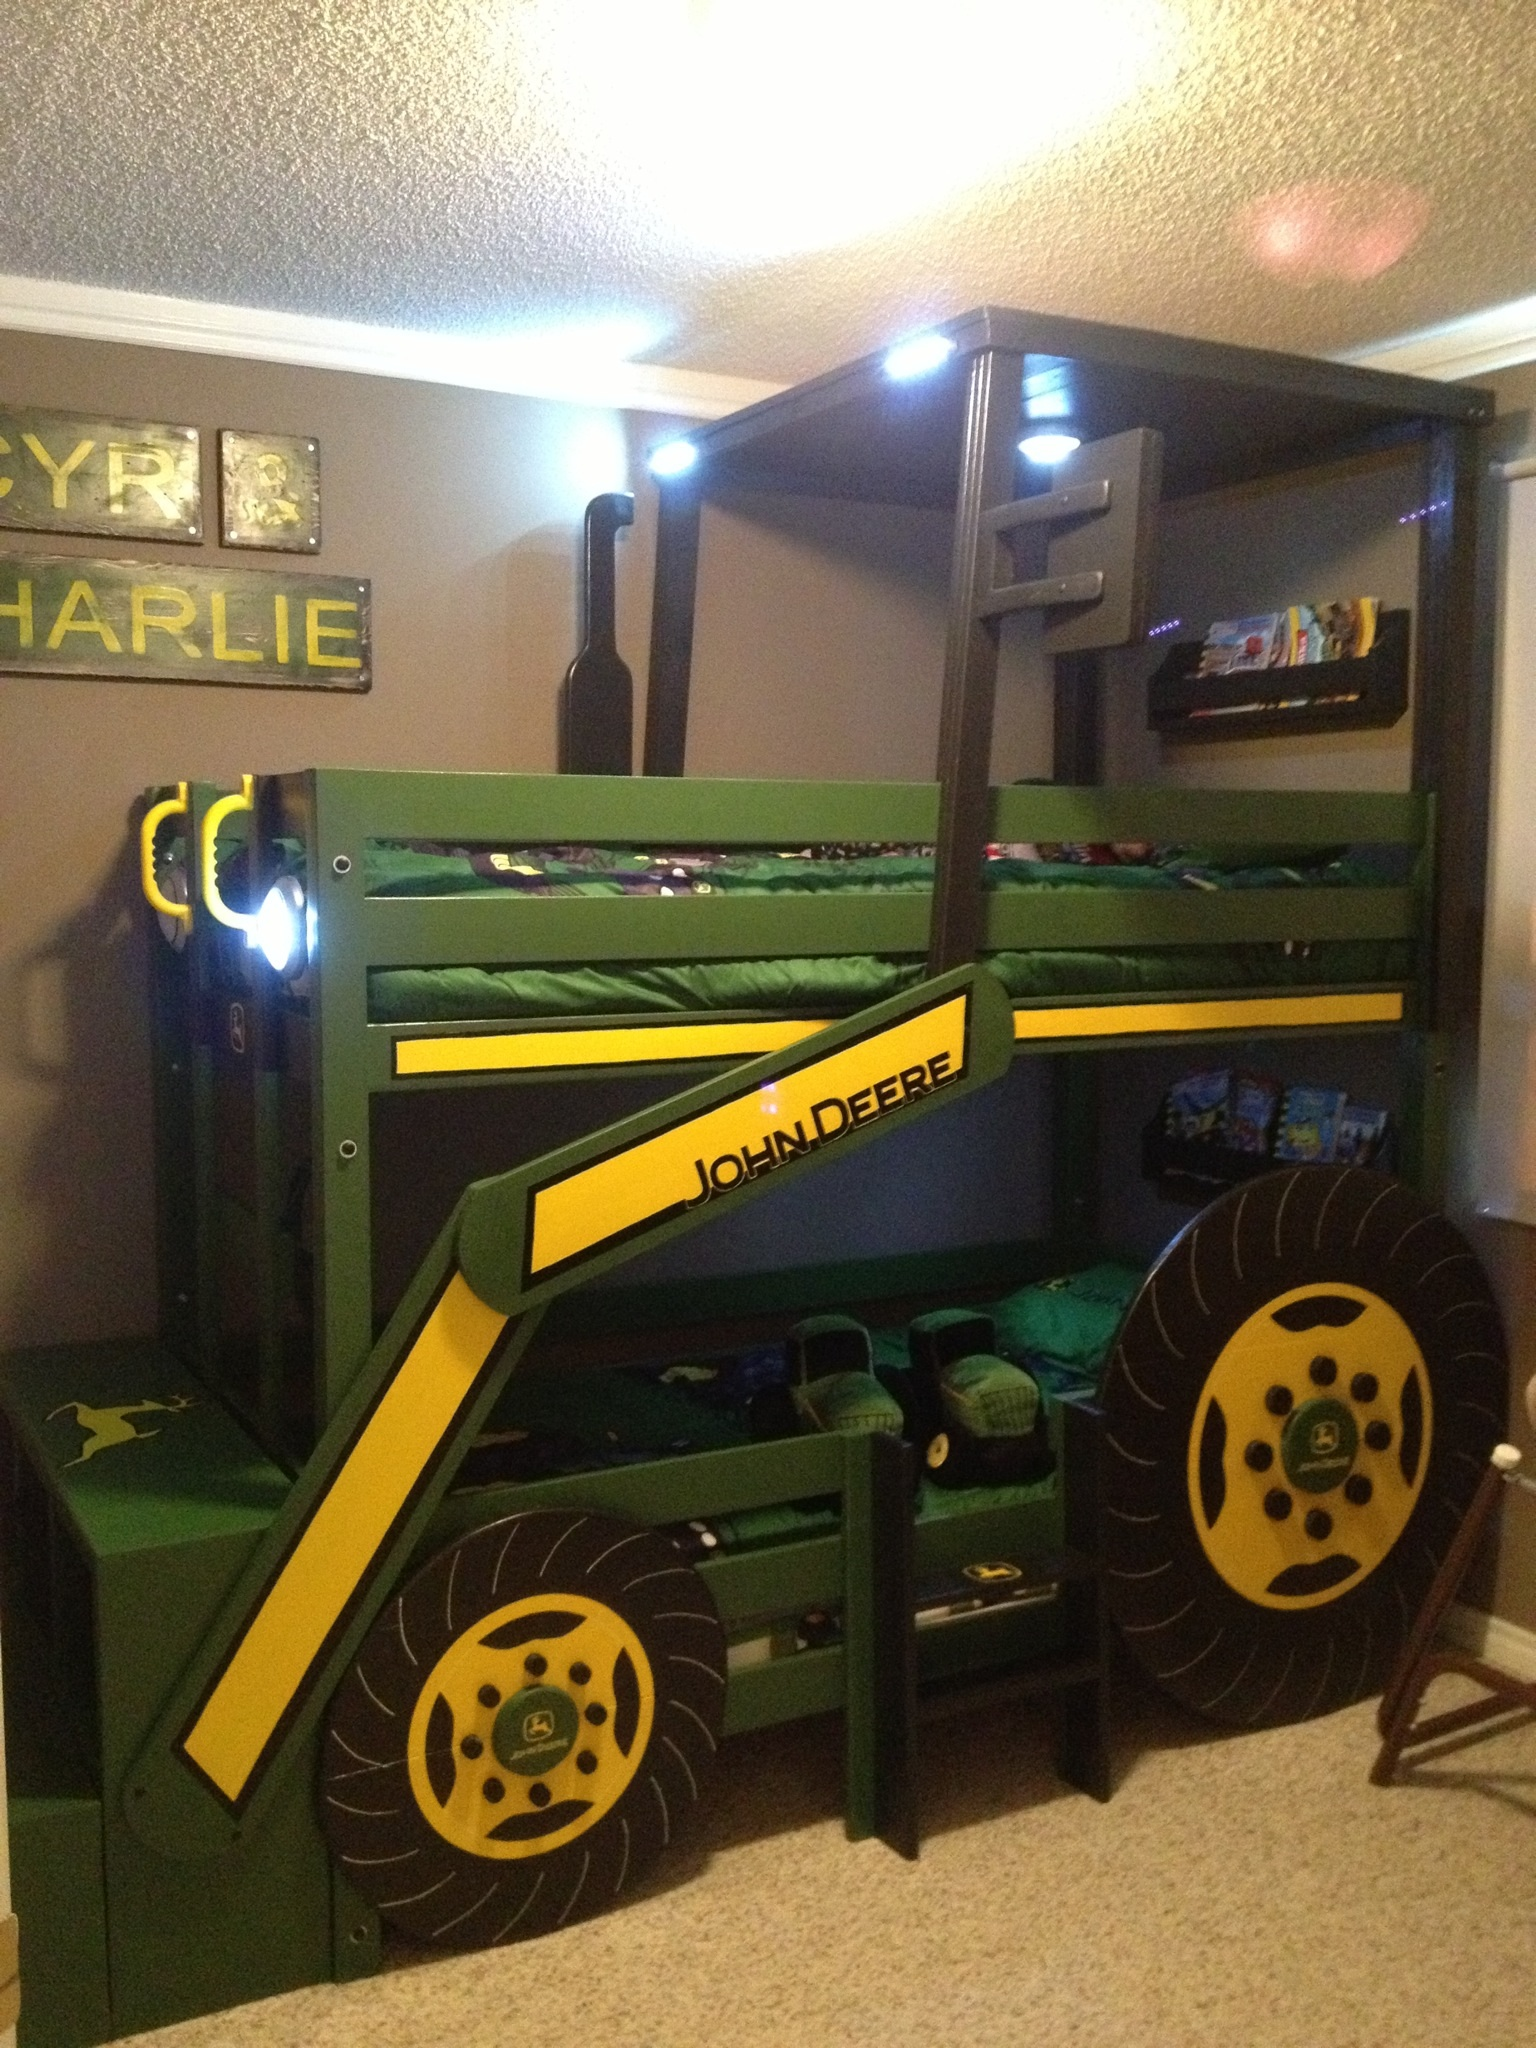 John Deere Bedding | John Deere Bed Sheets | John Deere Bed Plans